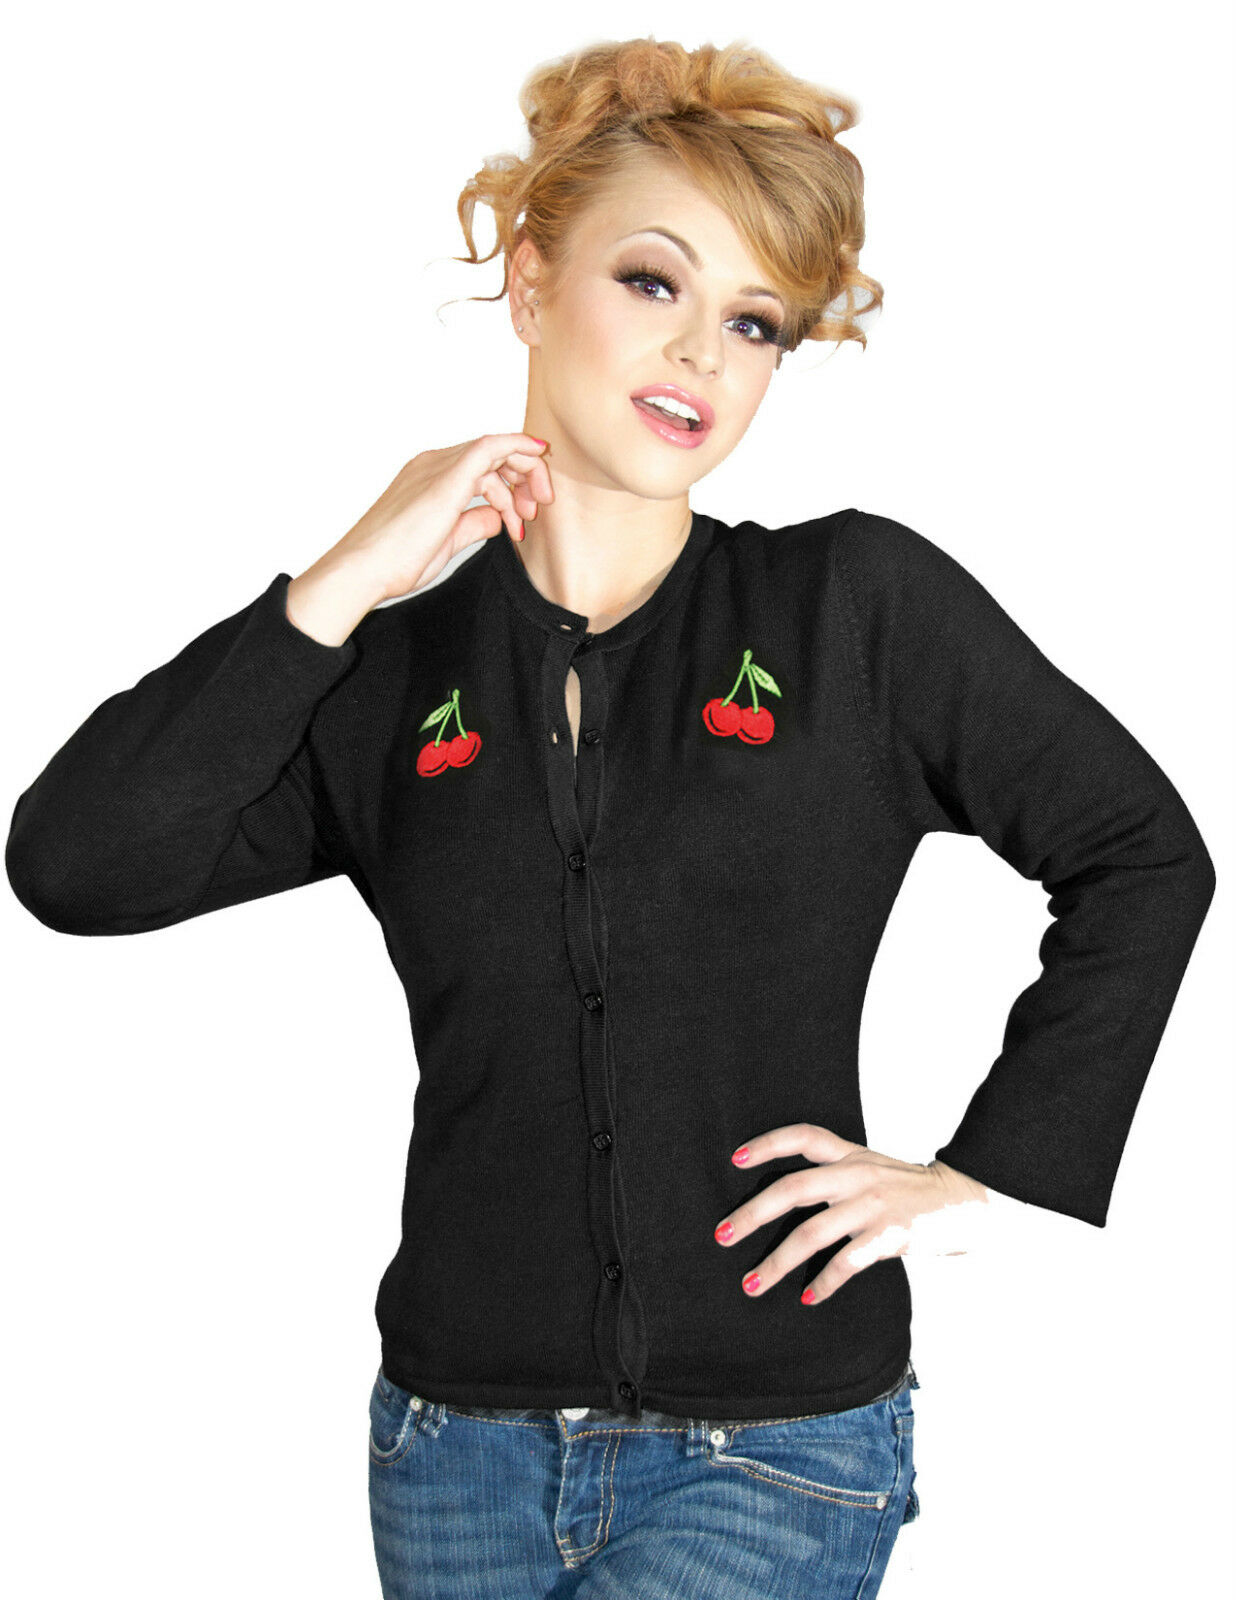 Cherry Cardigan-Rockabilly 8 14 PIN UP UP UP Retro Vintage 1950s Steady Clothing da0c0f